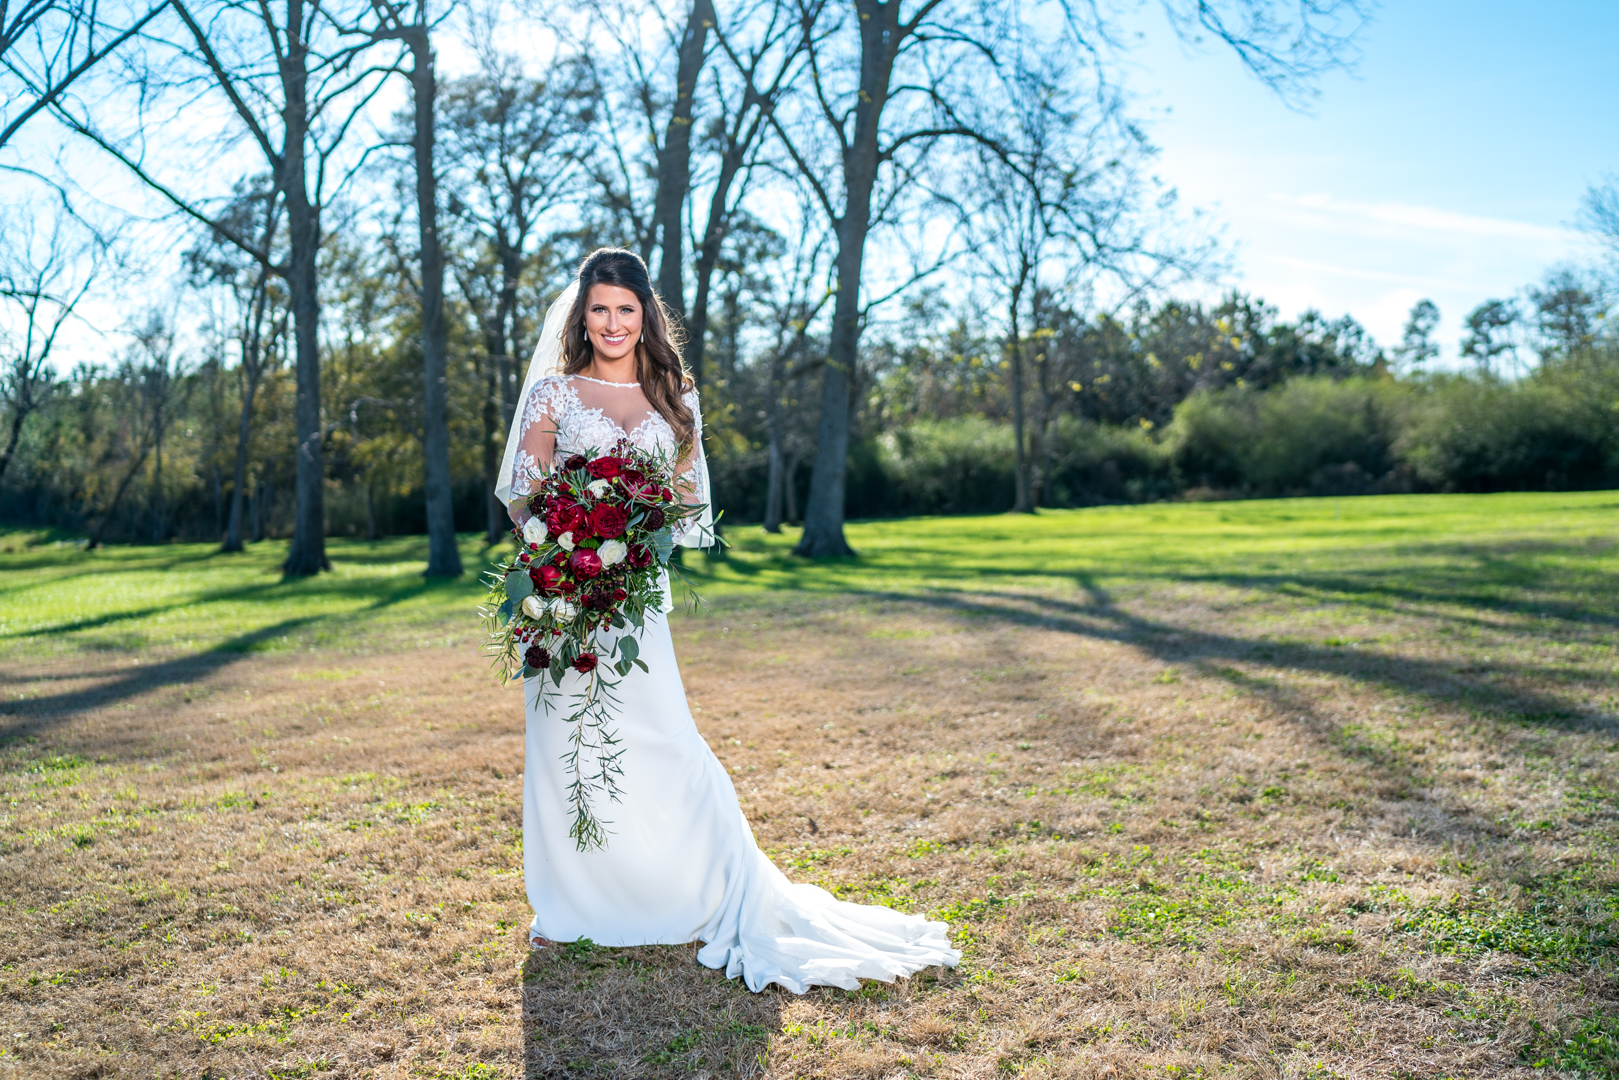 wedding-photographers-pensacola-28.jpg